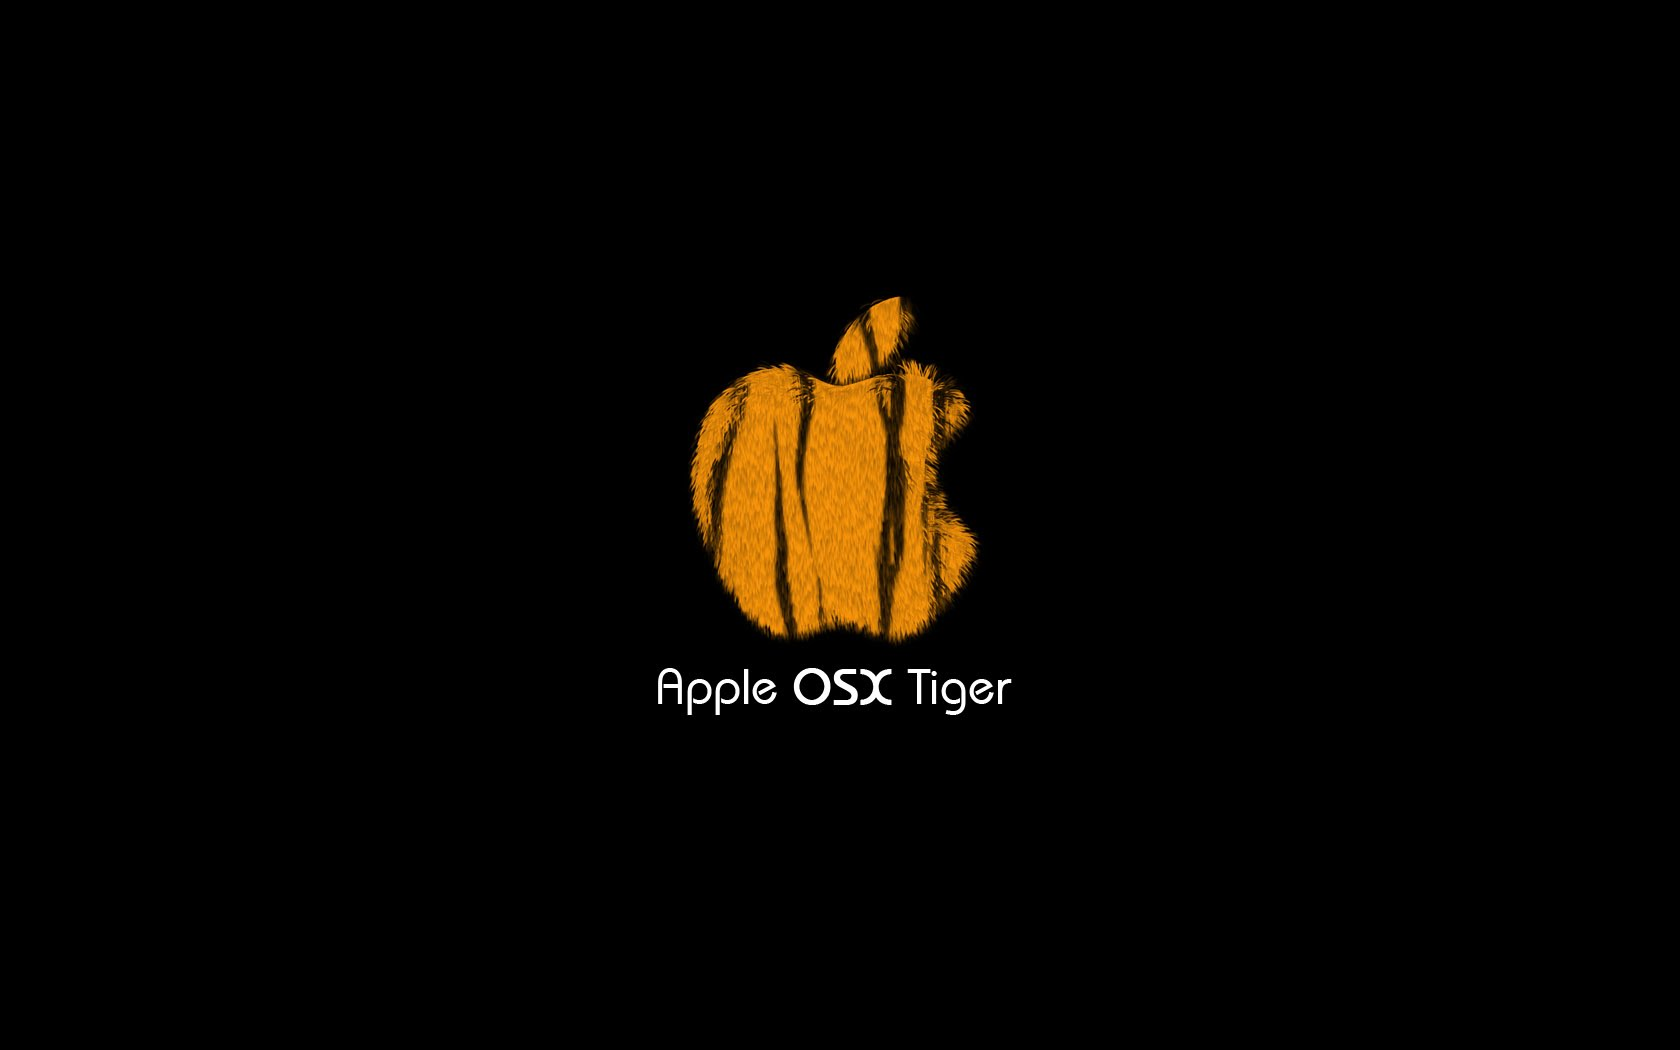 Mac Tiger Wallpaper 11089 Hd Wallpapers in Others   Imagescicom 1680x1050